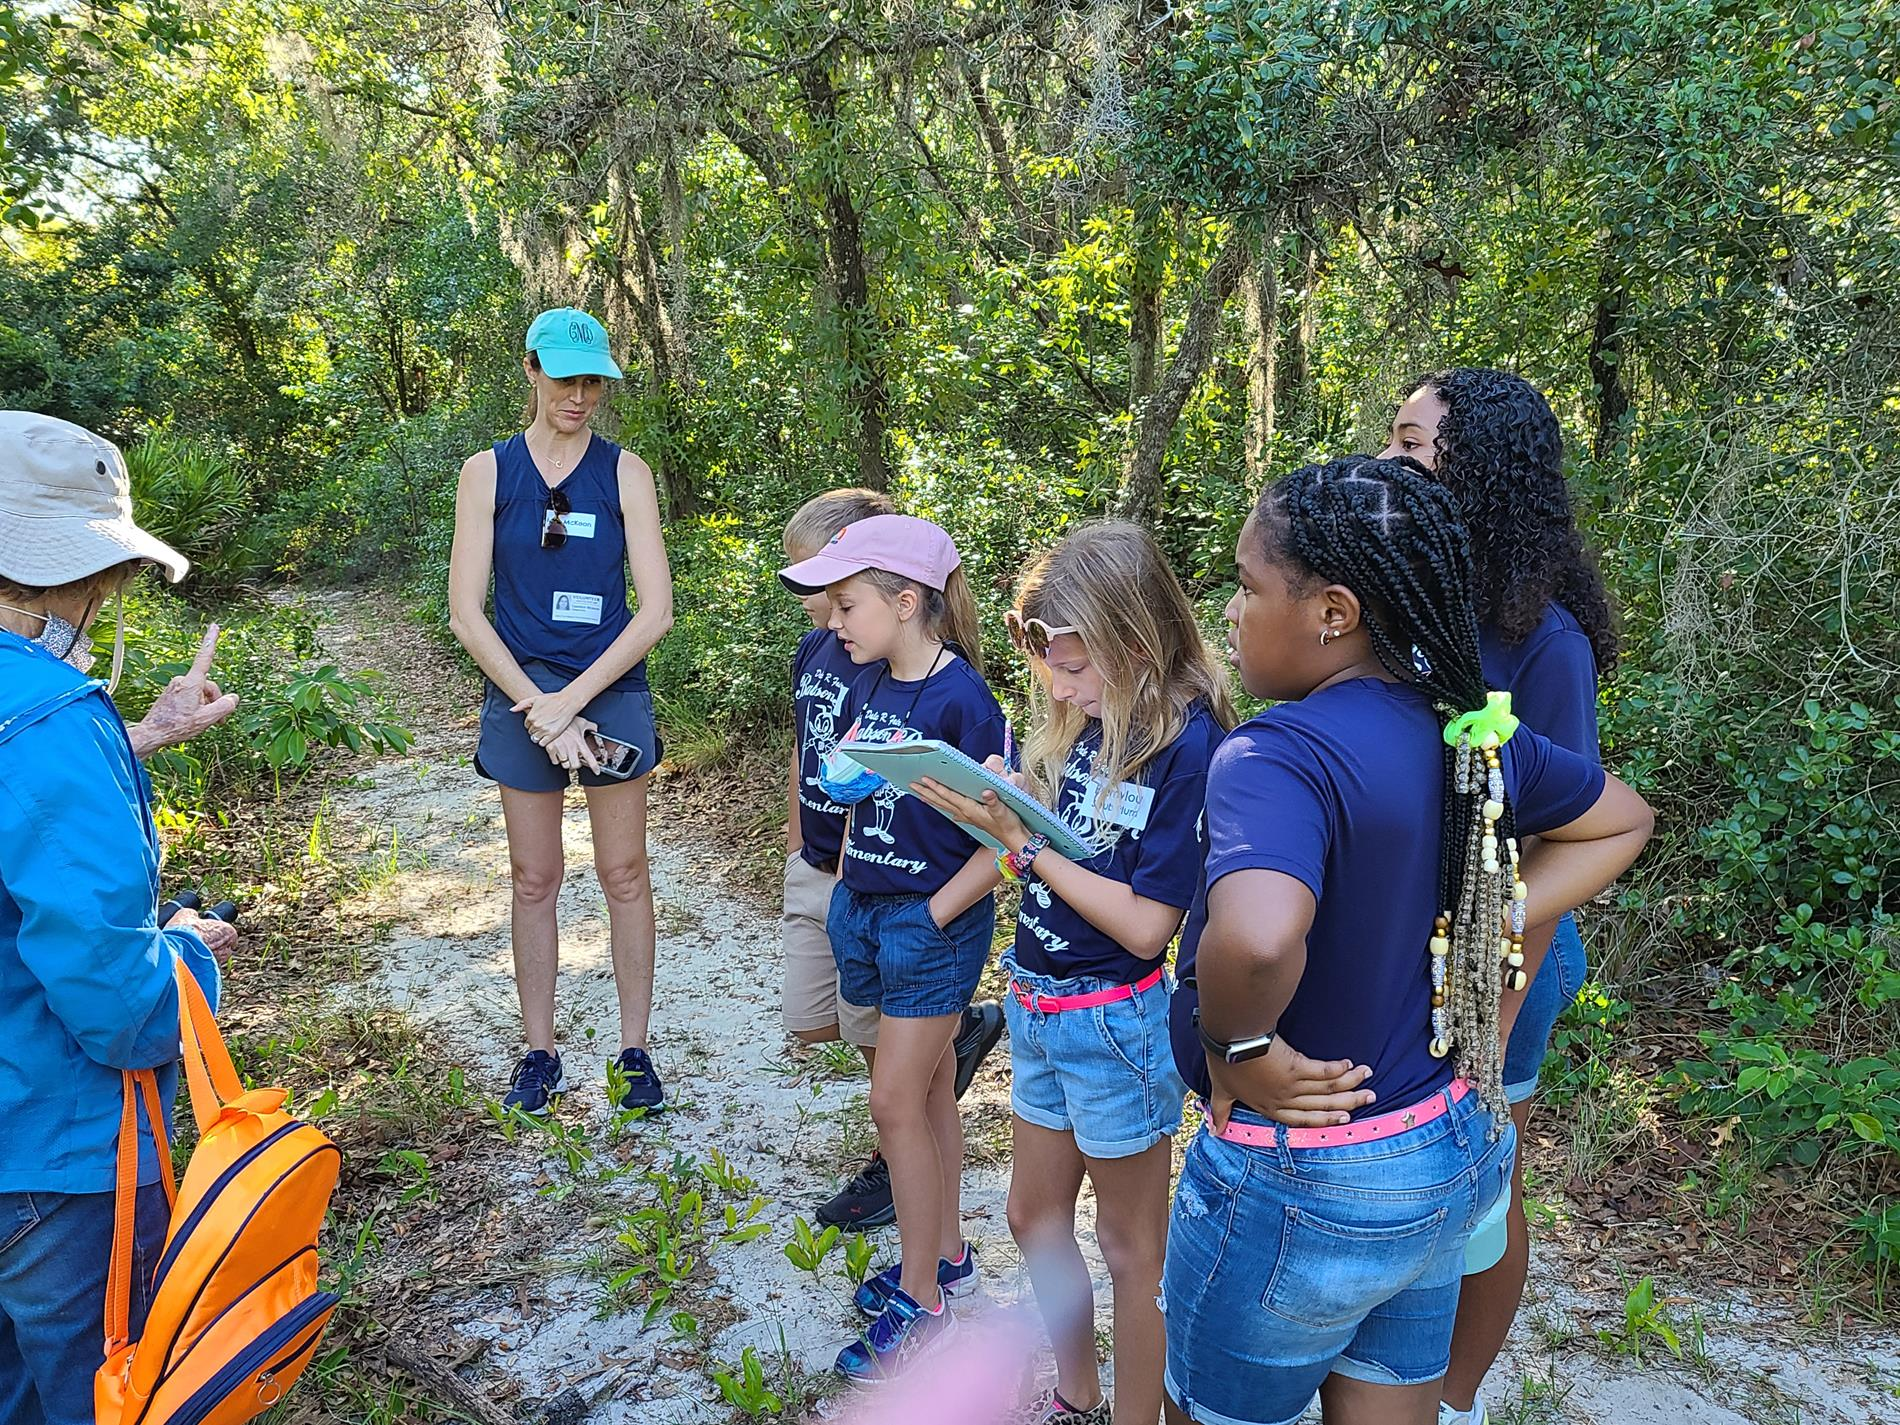 Mrs. Mercer's class listening to their trail guide.